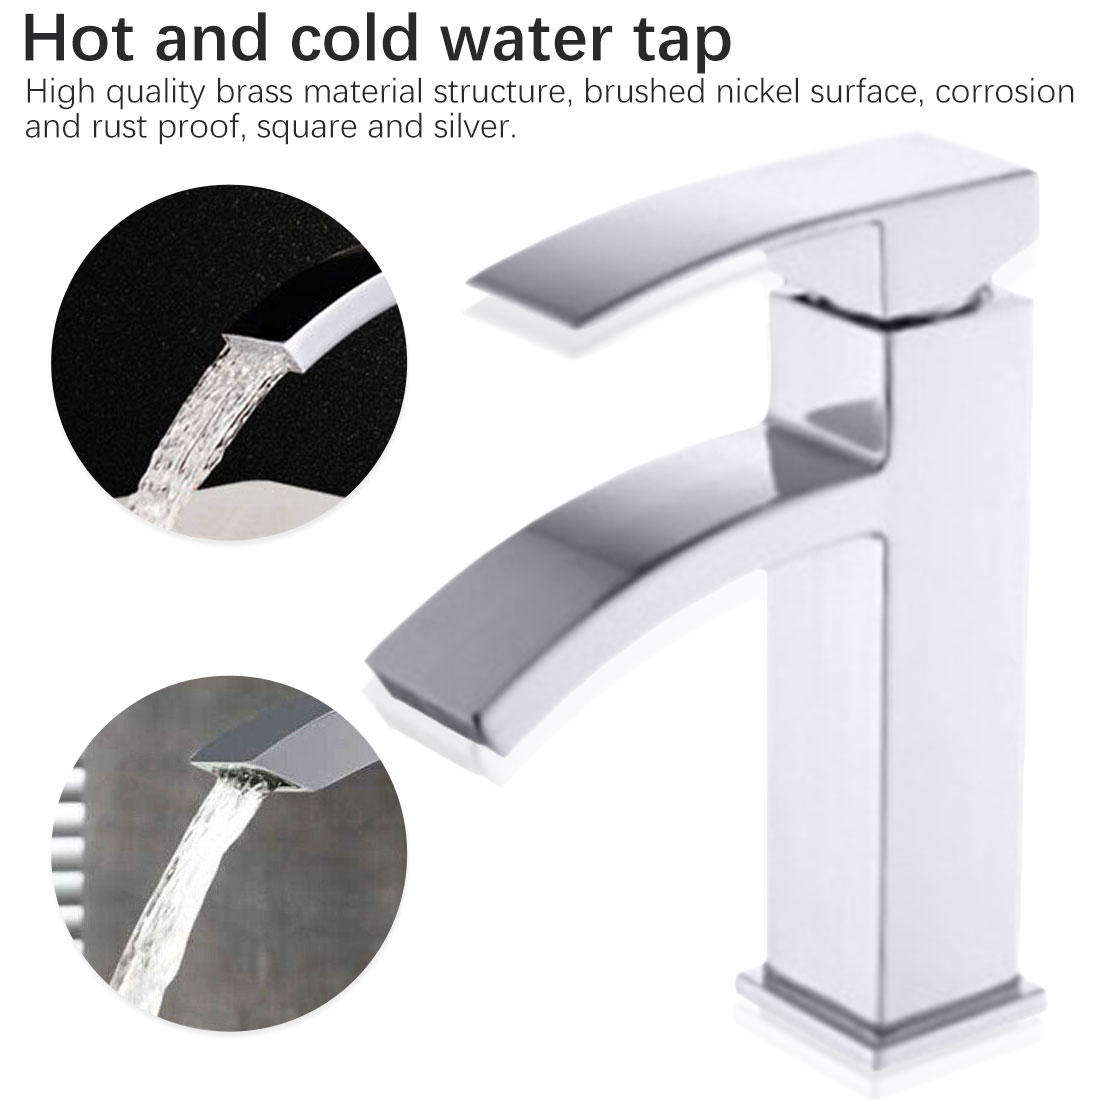 Bathroom Faucet Single Handle For Bathroom Sink Mixer Tap Stainless Steel Chrome Basin Mixer Bathroom Accessories